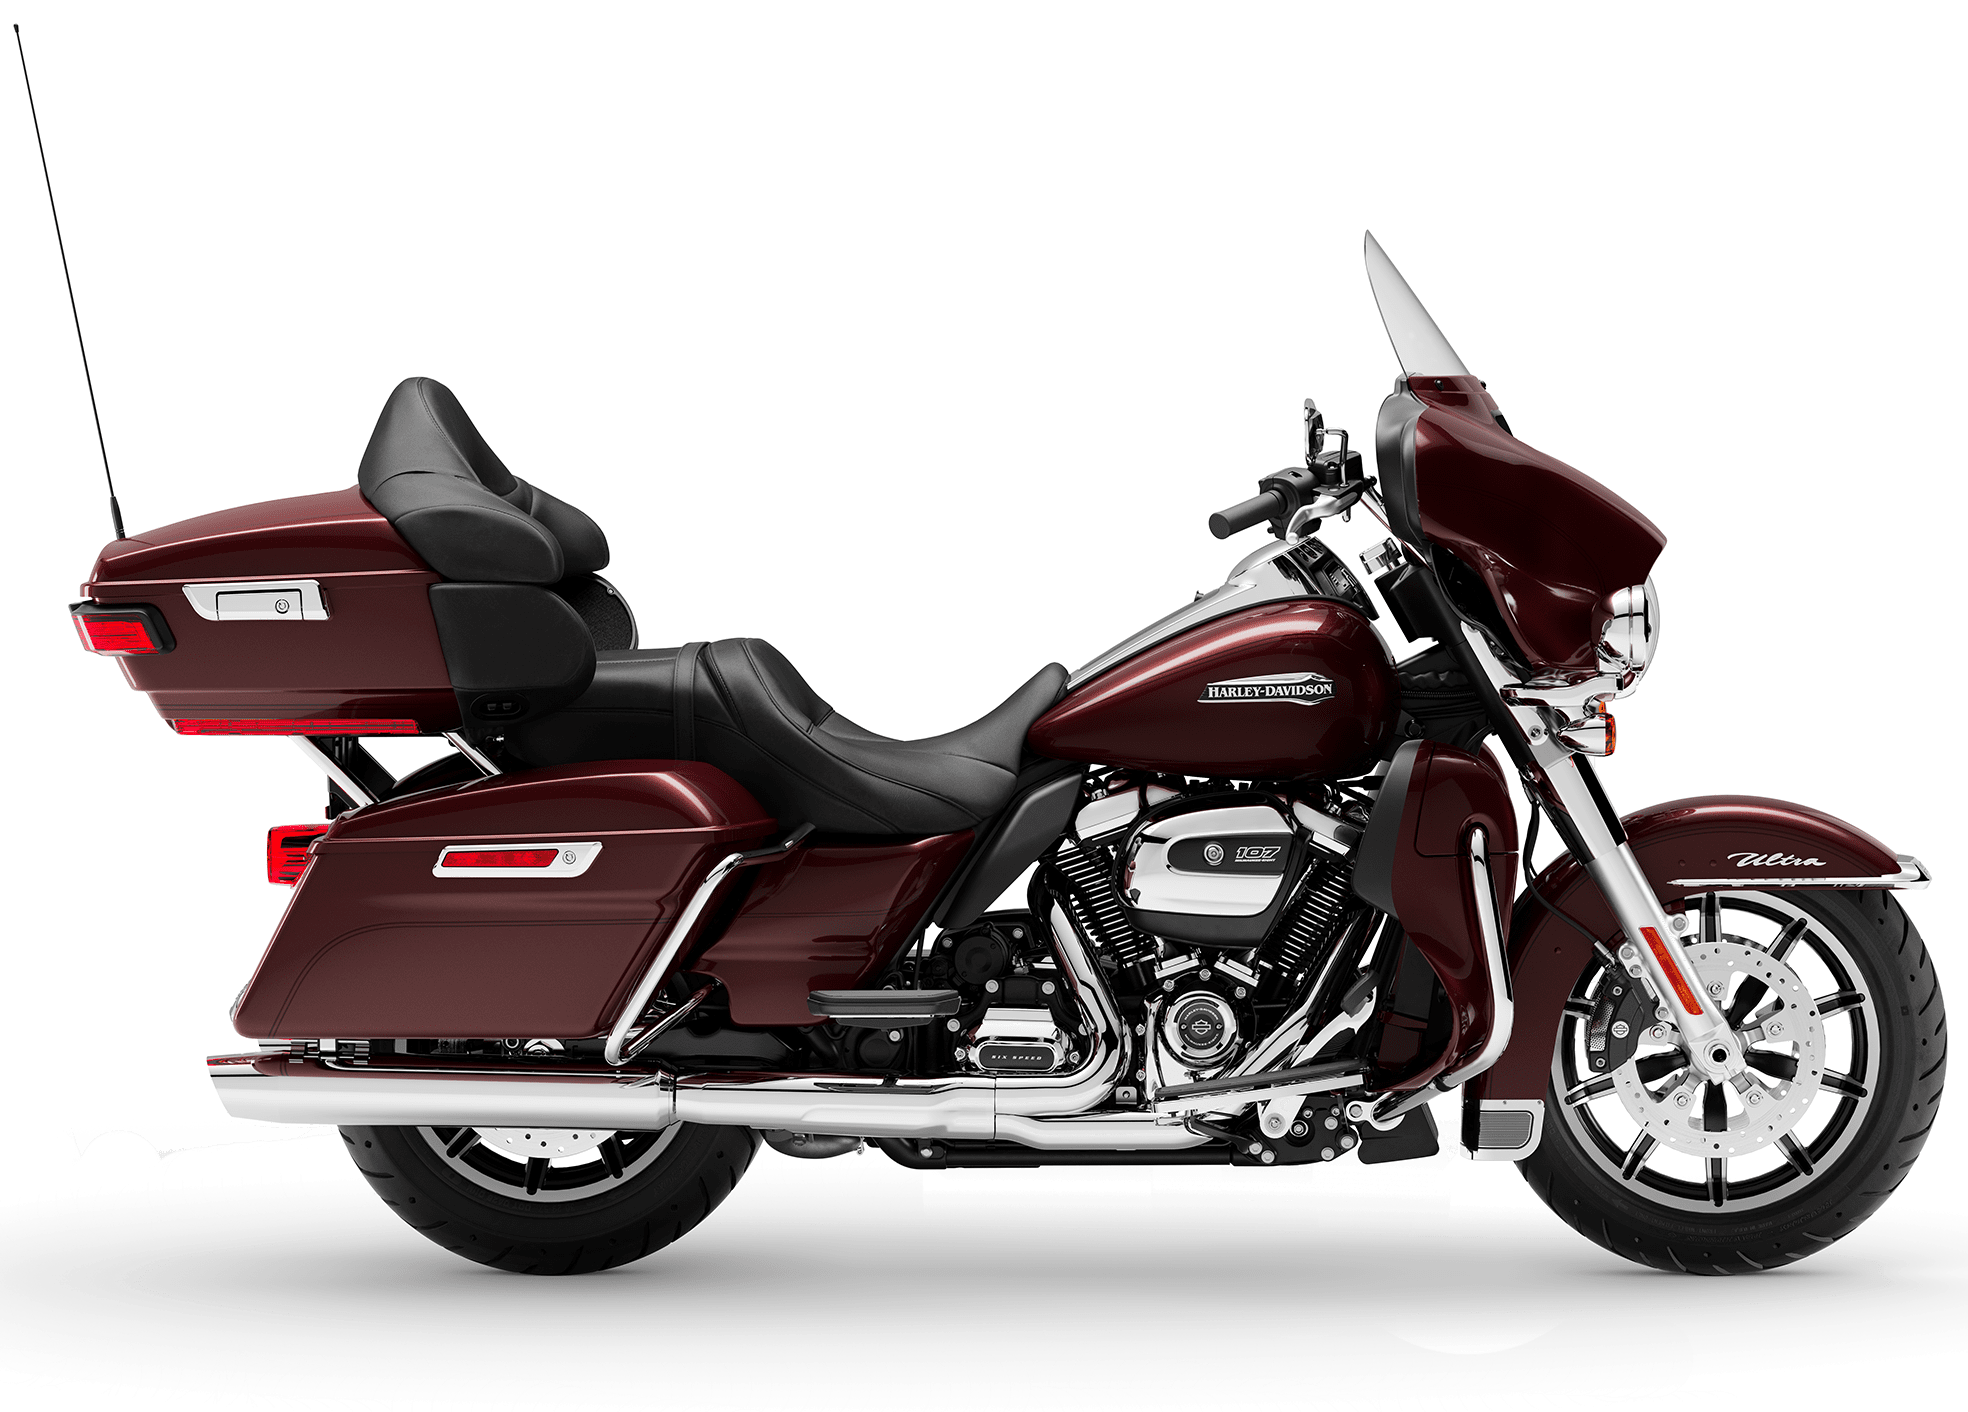 2019 Harley-Davidson H-D Touring Electra Glide Ultra Classic Twisted Cherry